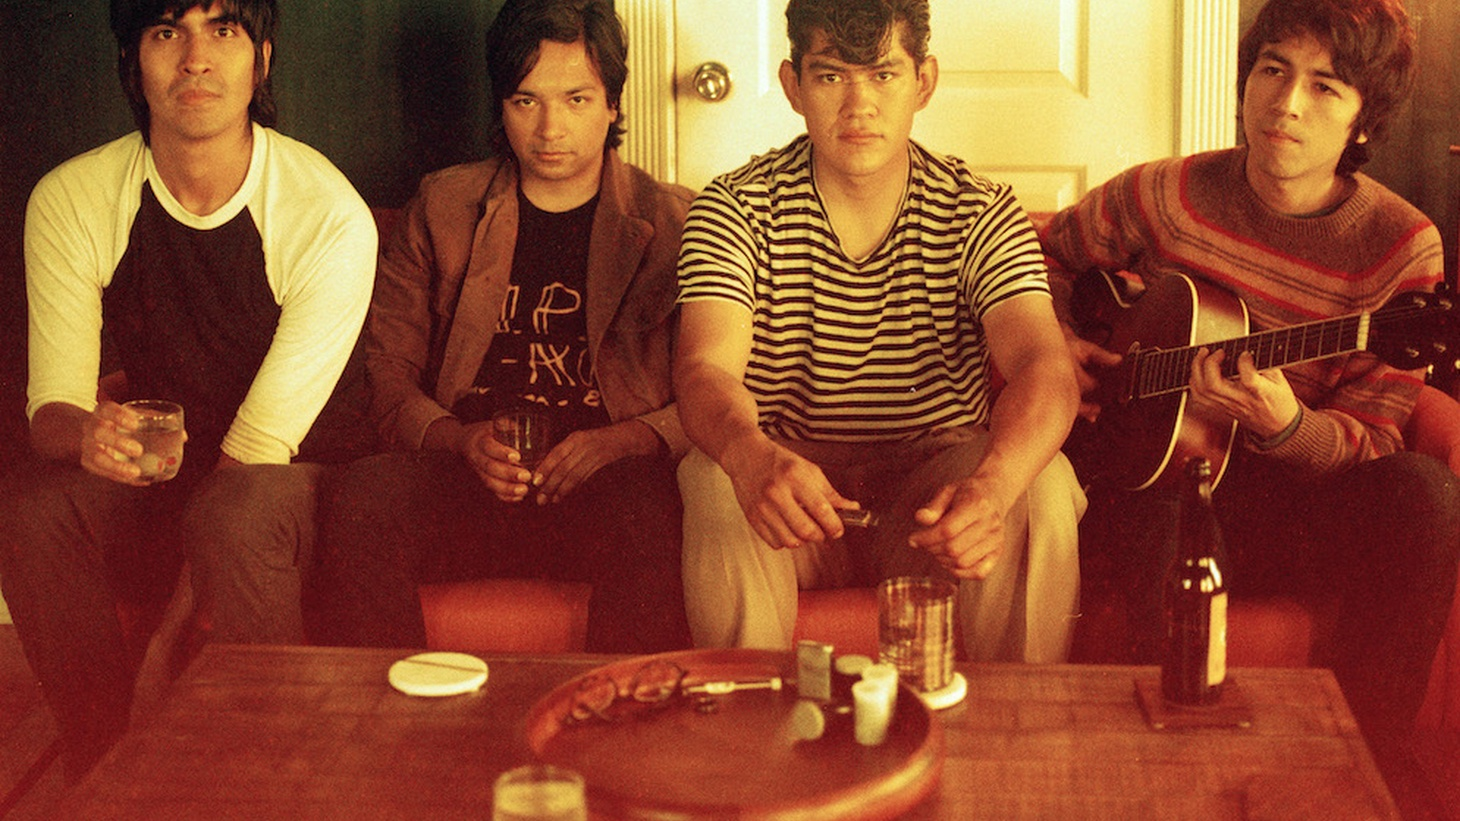 The Tracks is the moniker for 4 working class kids from East LA who met in High School.